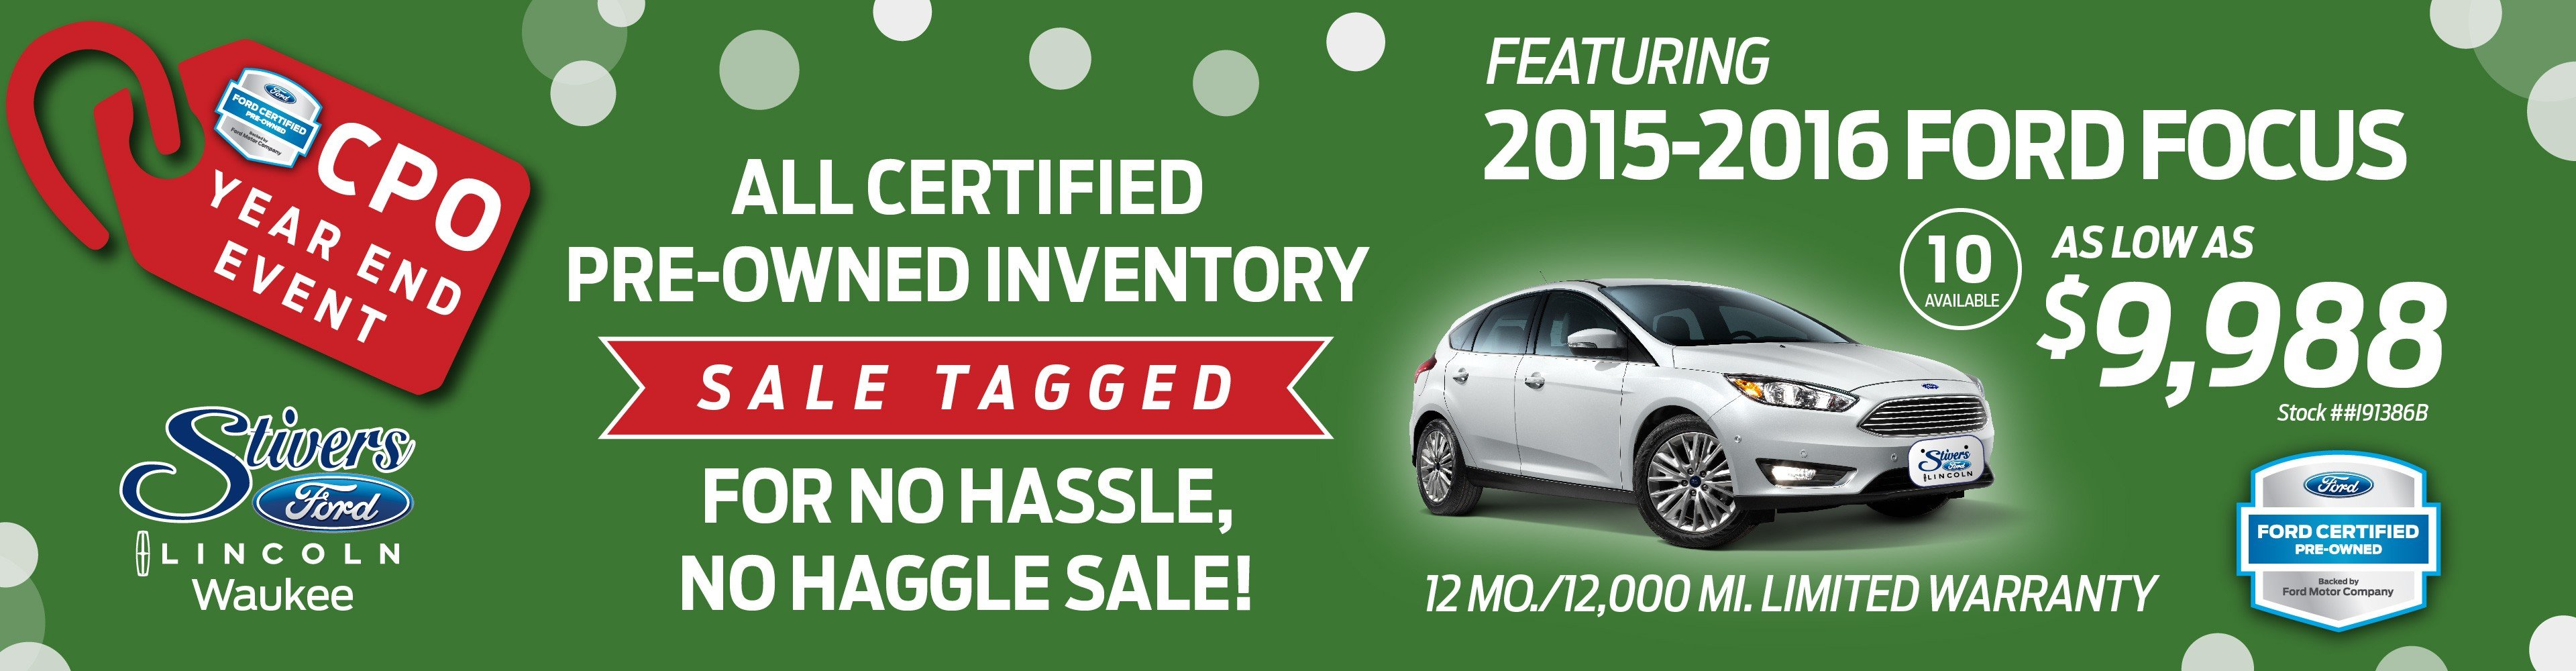 certified pre-owned event